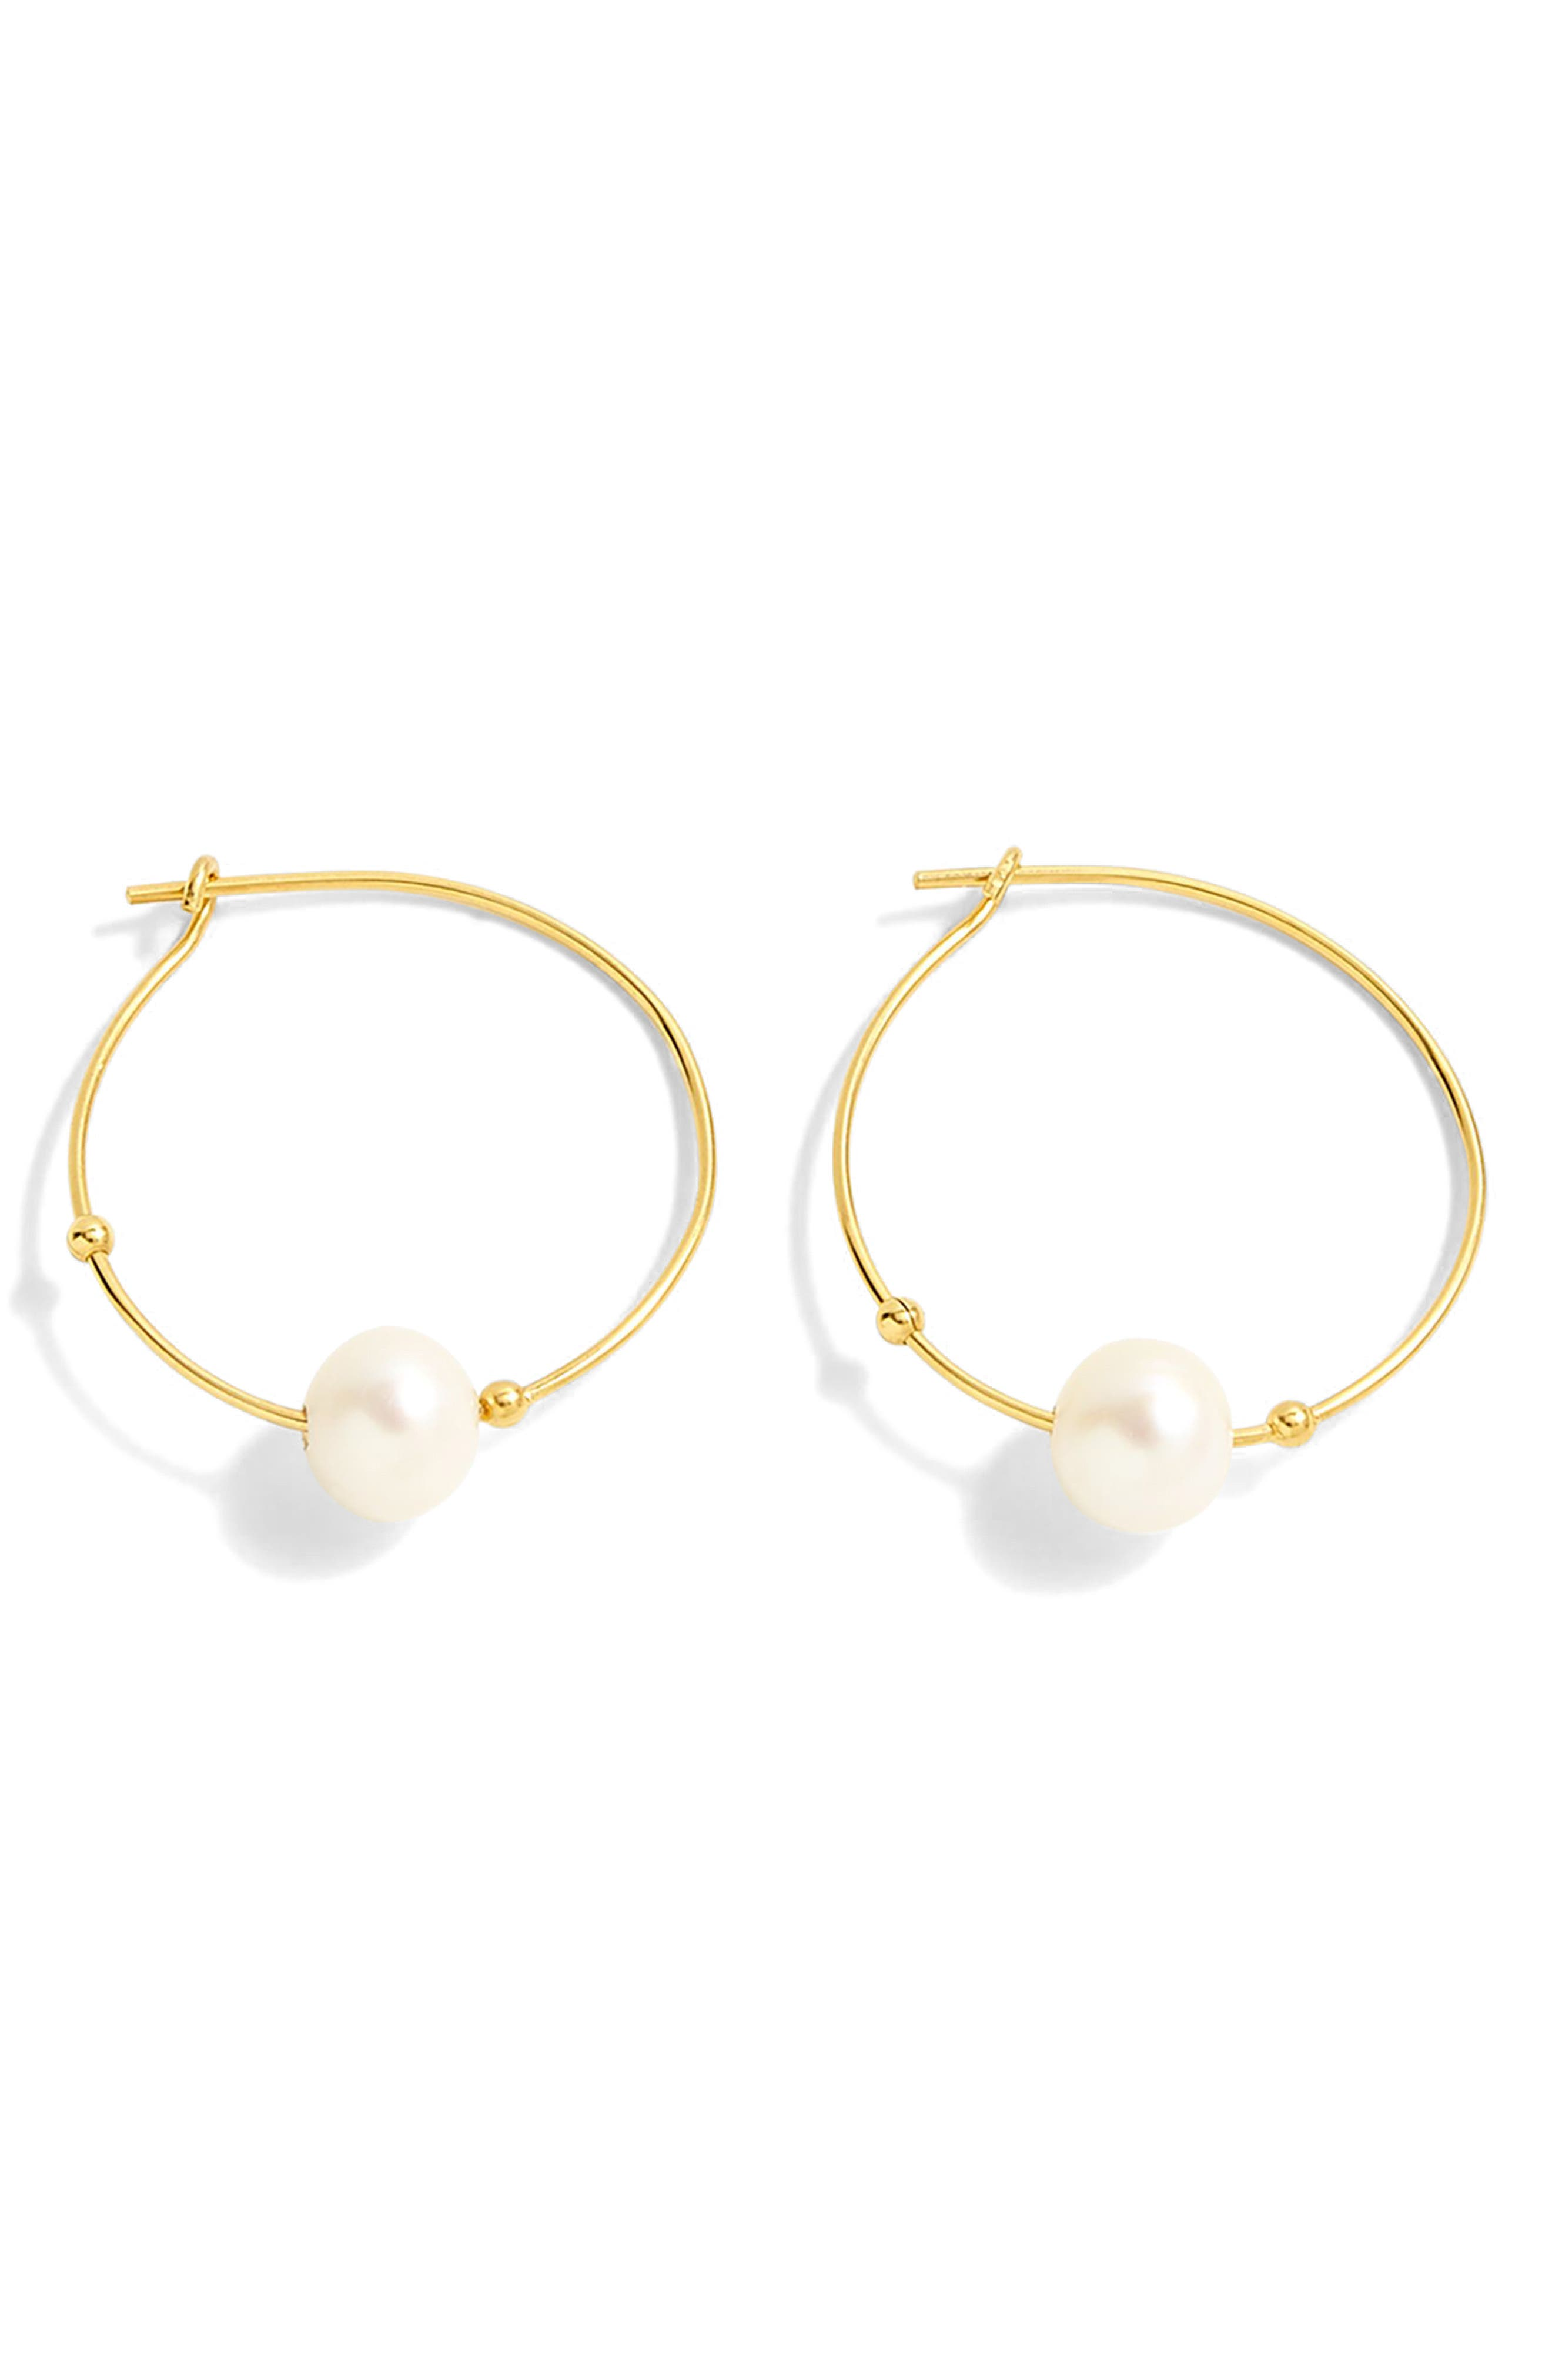 J.Crew Single Pearl Hoop Earrings